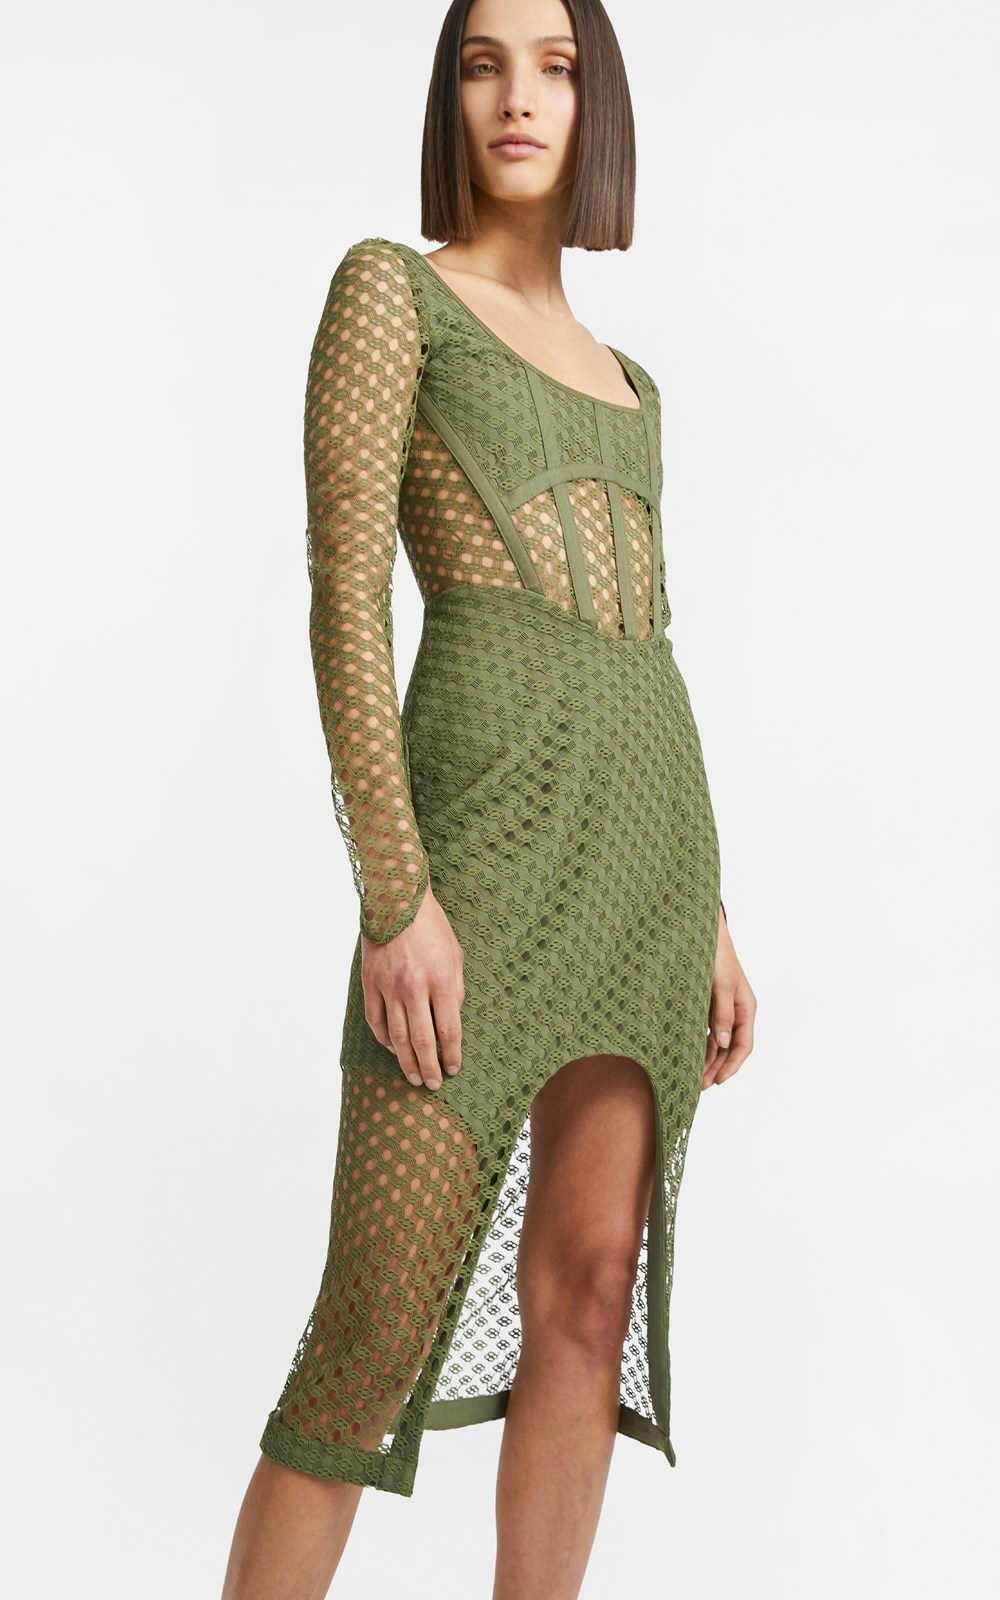 Dresses | CROCHET LACE LS DRESS